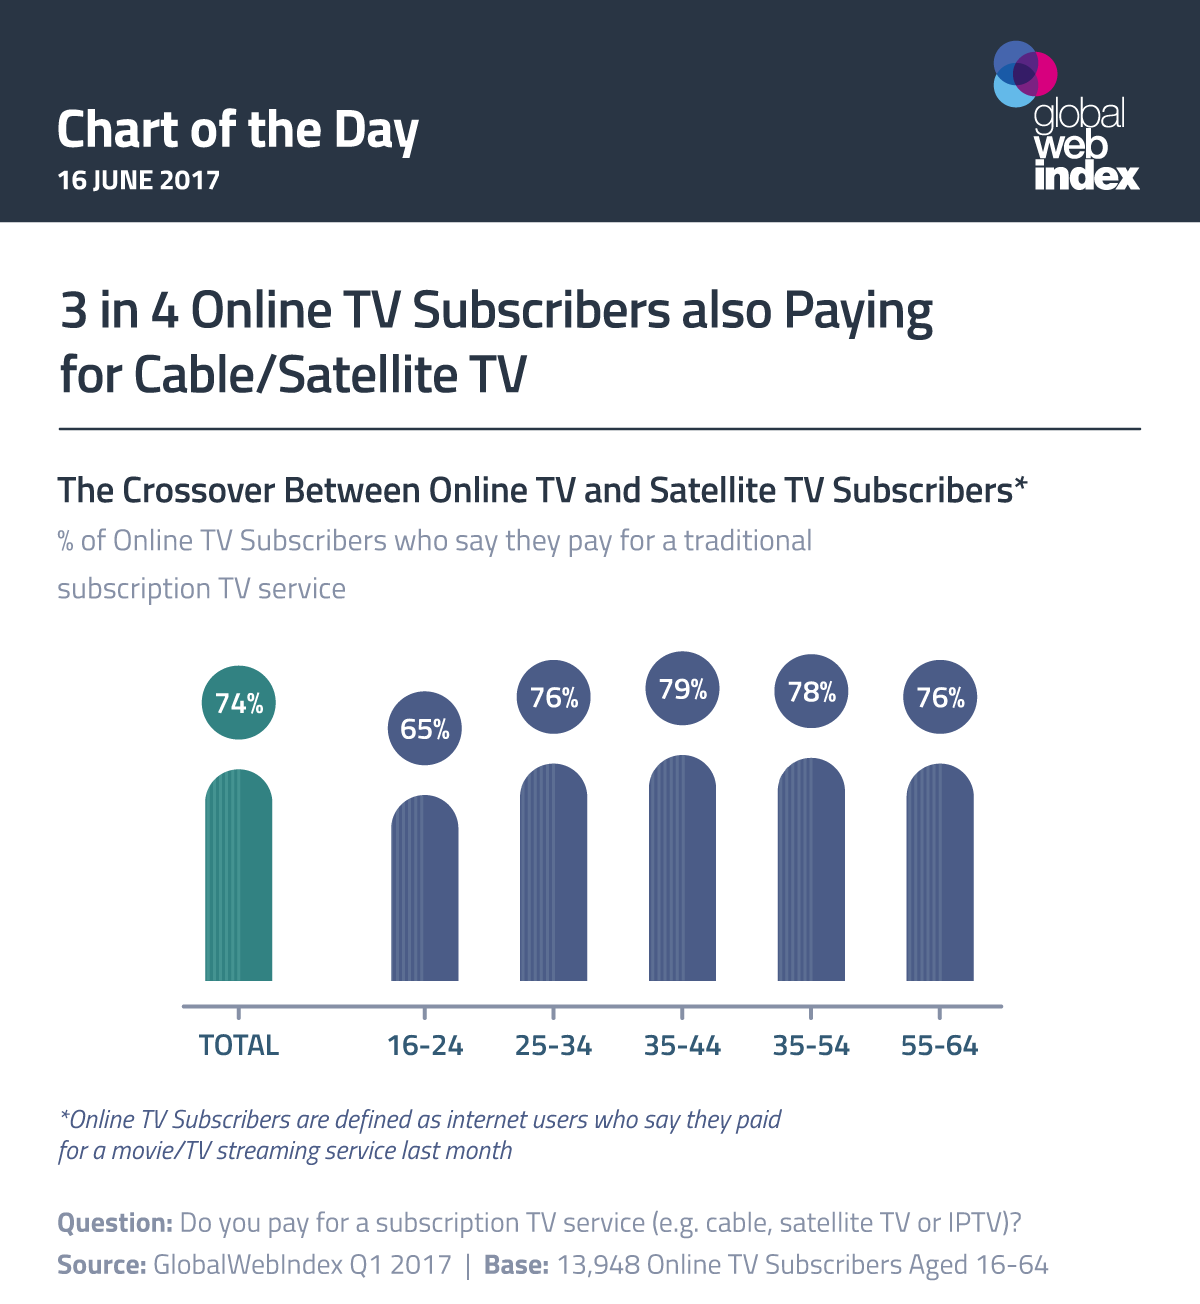 3 in 4 Online TV Subscribers also Paying for Cable/Satellite TV